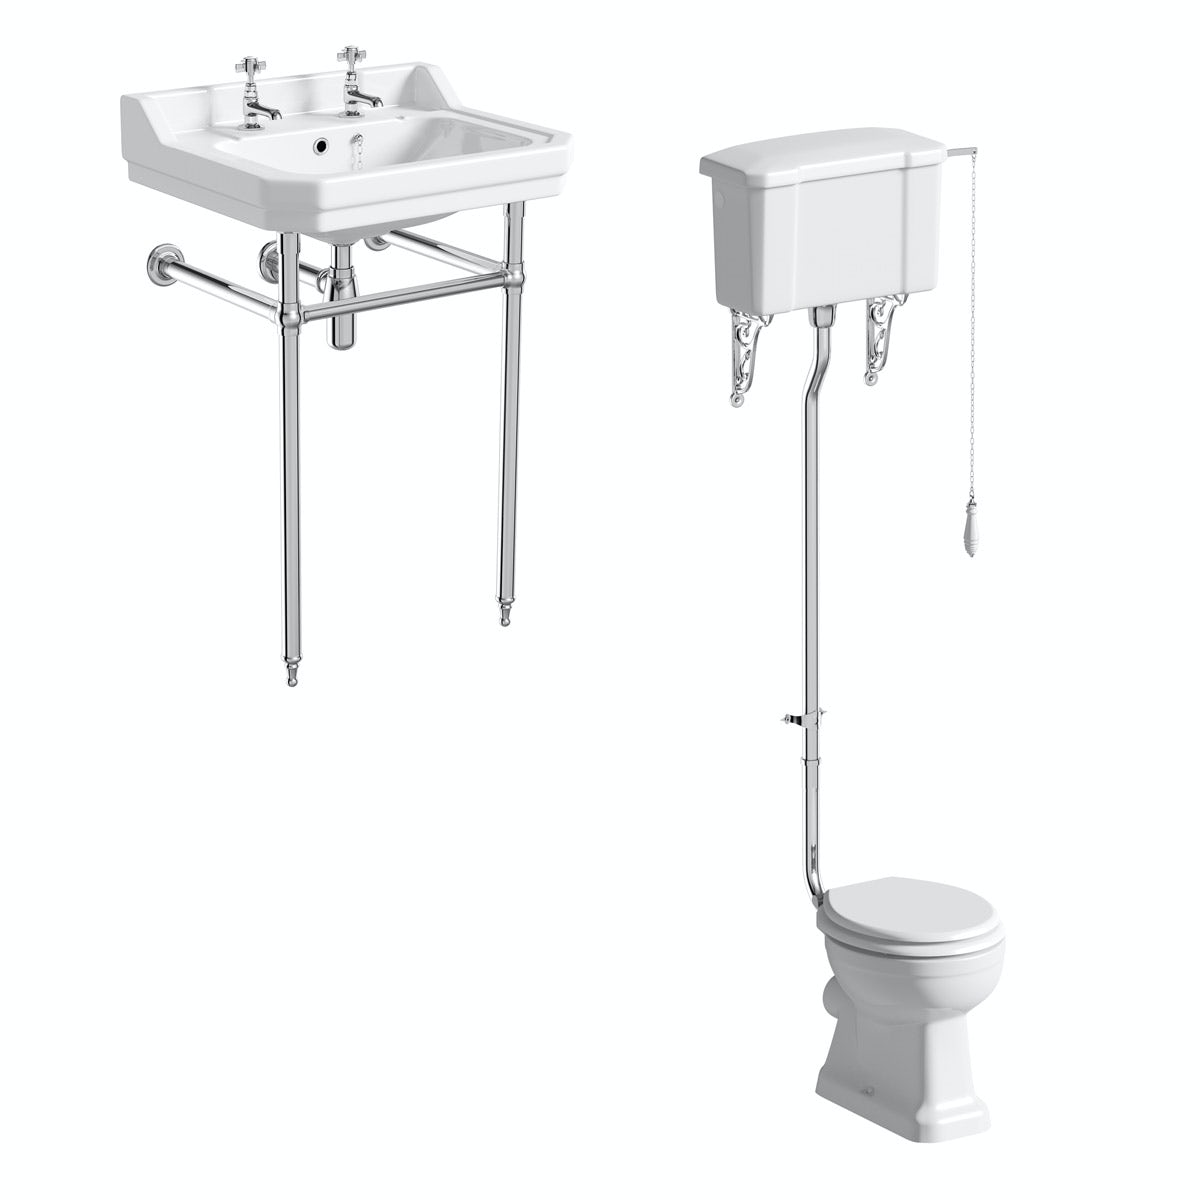 The Bath Co. Camberley cloakroom suite with high level traditional toilet with white seat, washstand and basin 610mm